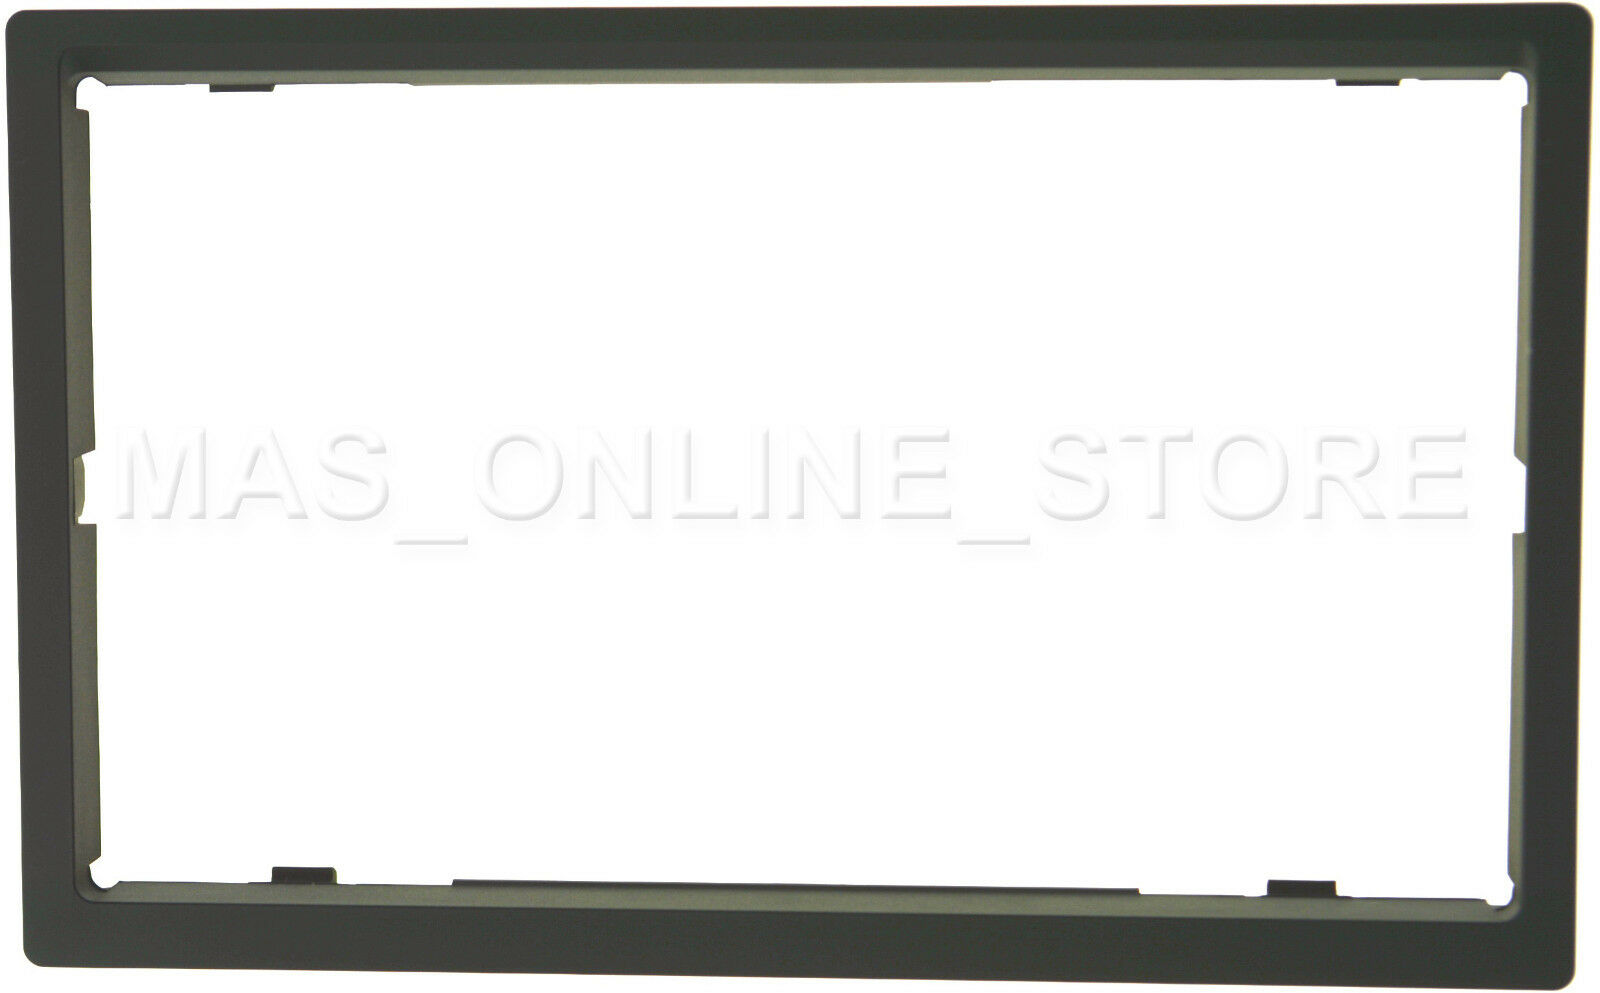 Kenwood Ddx 8901hd Ddx8901hd Genuine Trim Ring Ships Today Wiring Harness For Dnx891hd 1 Of 5only 2 Available